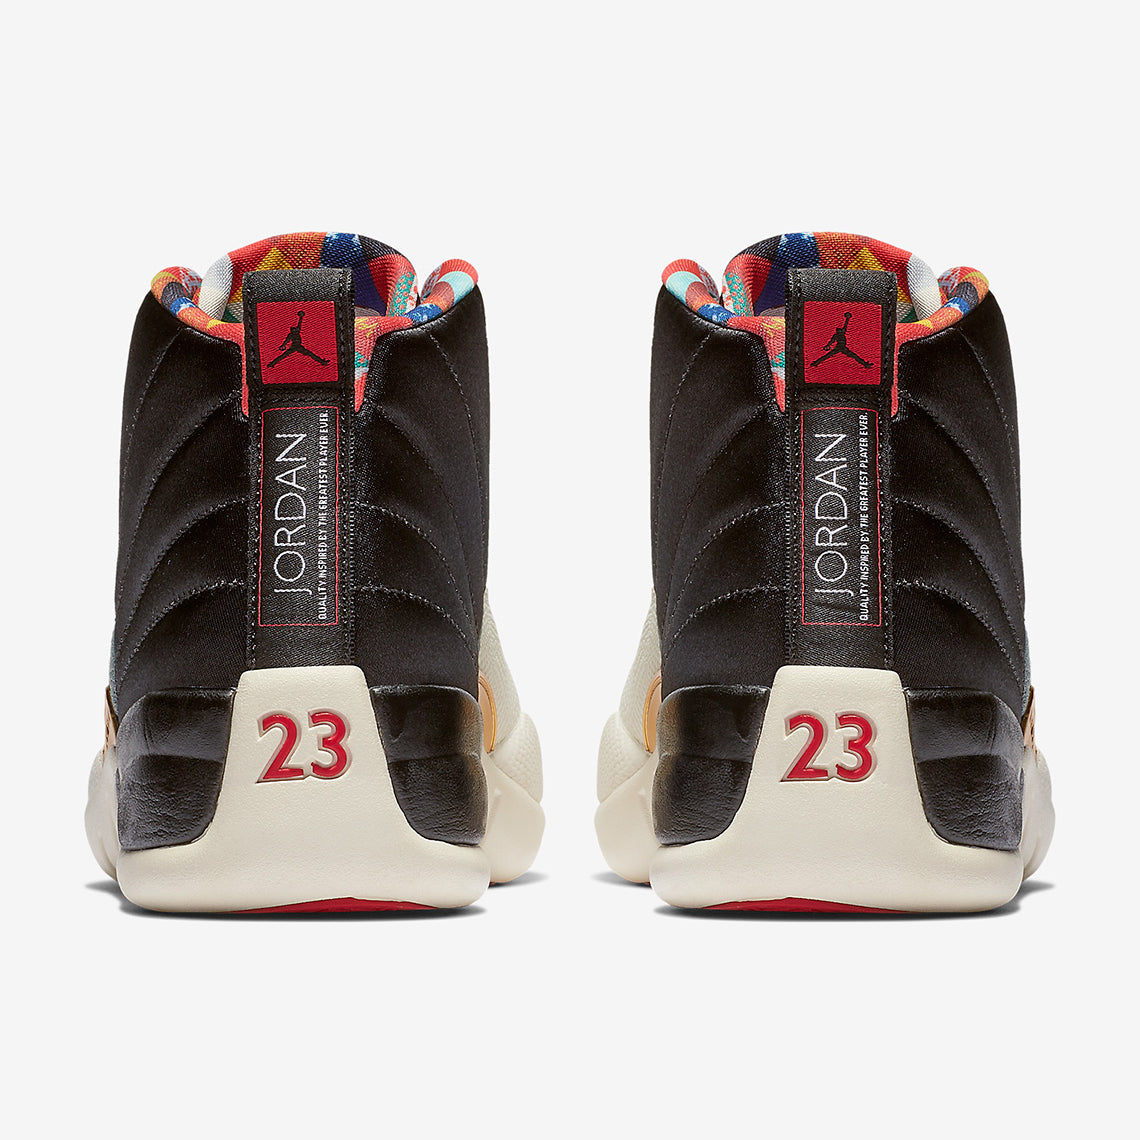 check out eeccc b66f3 Nike Air Jordan 12 Retro CNY Year of the Pig 2019 (CI2977-006)